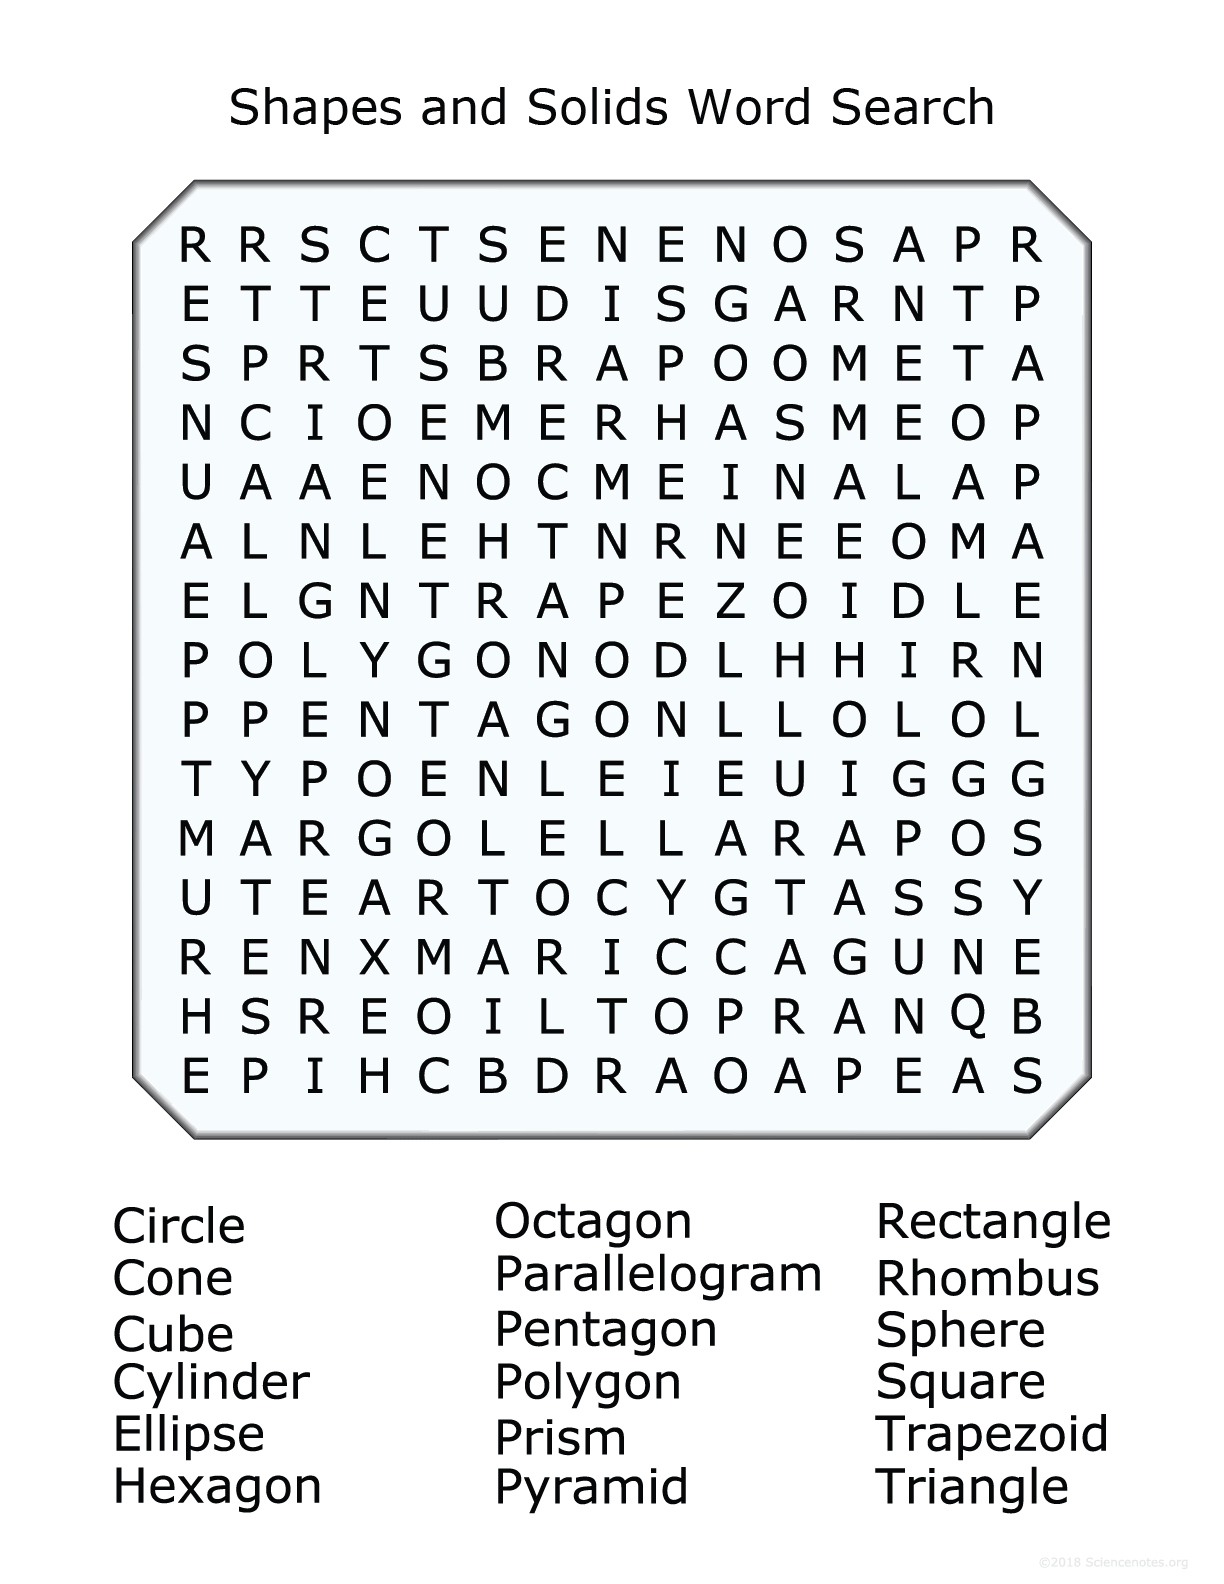 2d And 3d Shapes Word Search Puzzle